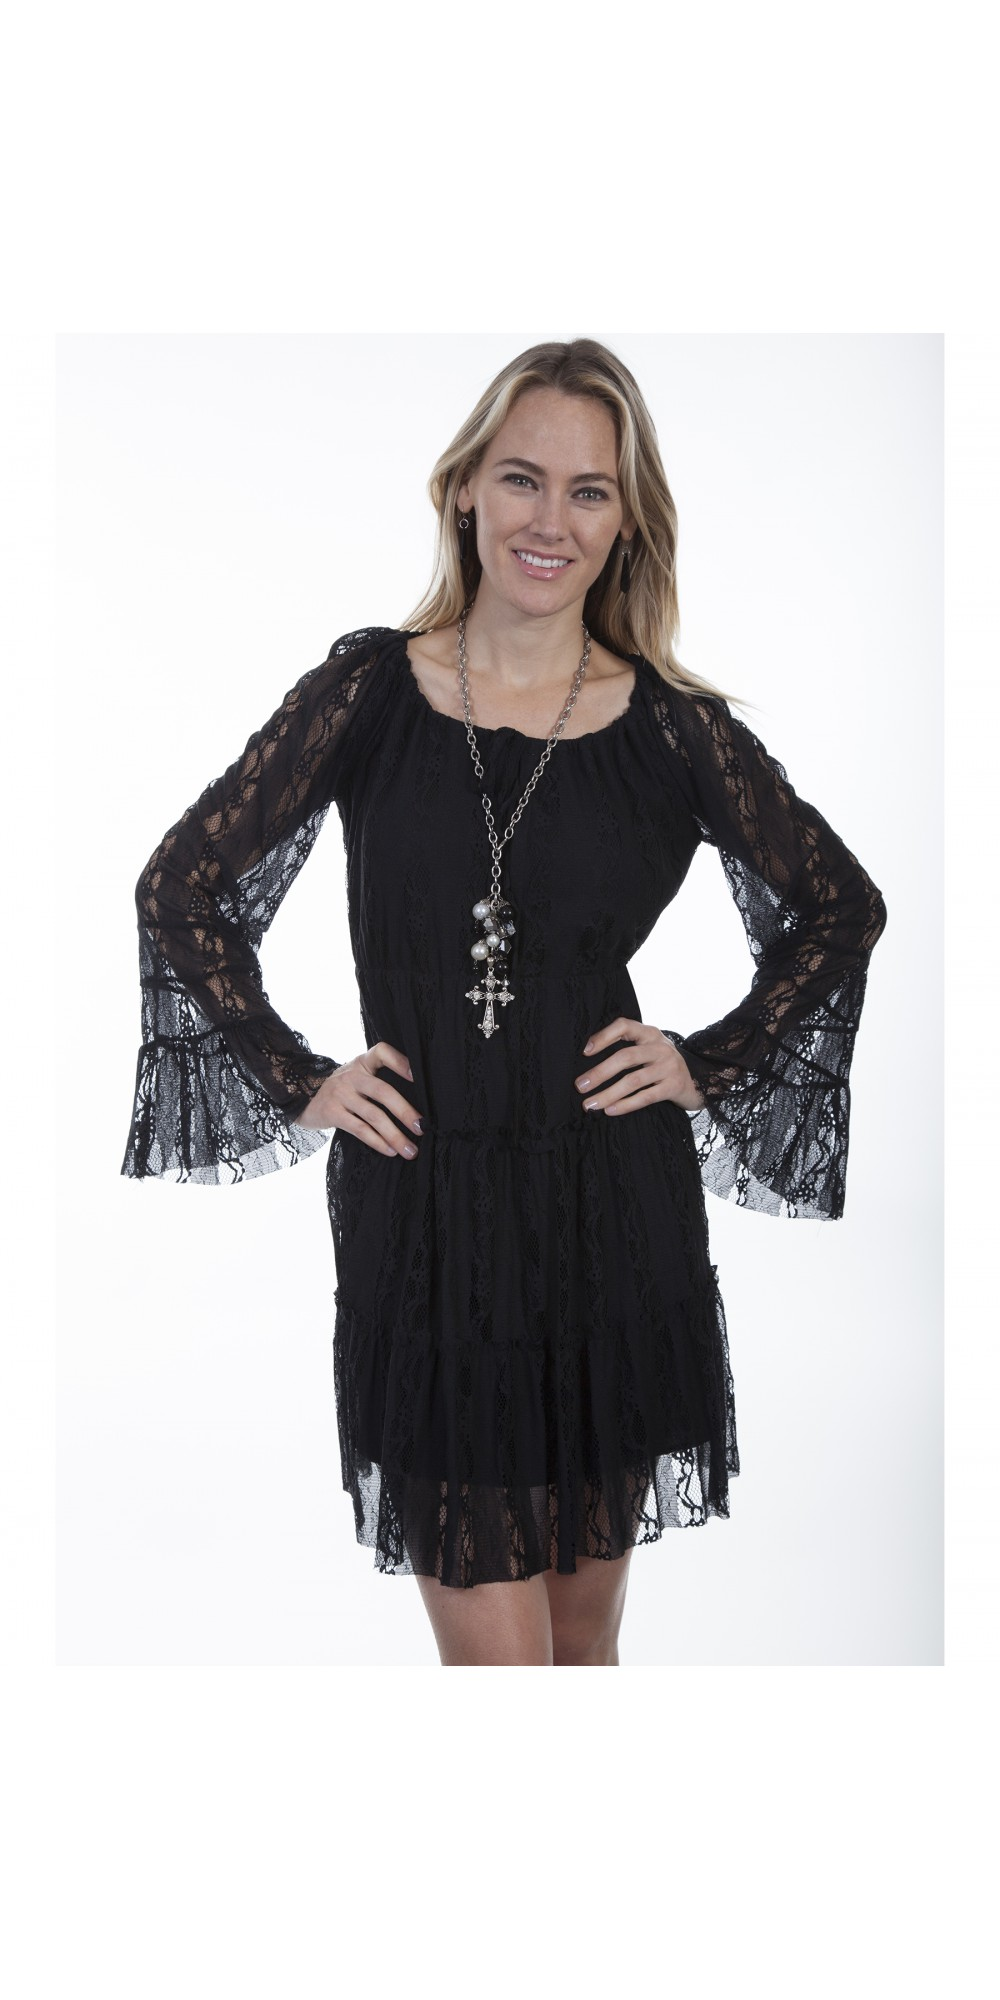 Honey Creek Saddle Up Sweet Cowgirl Dress in Black by Scully Leather